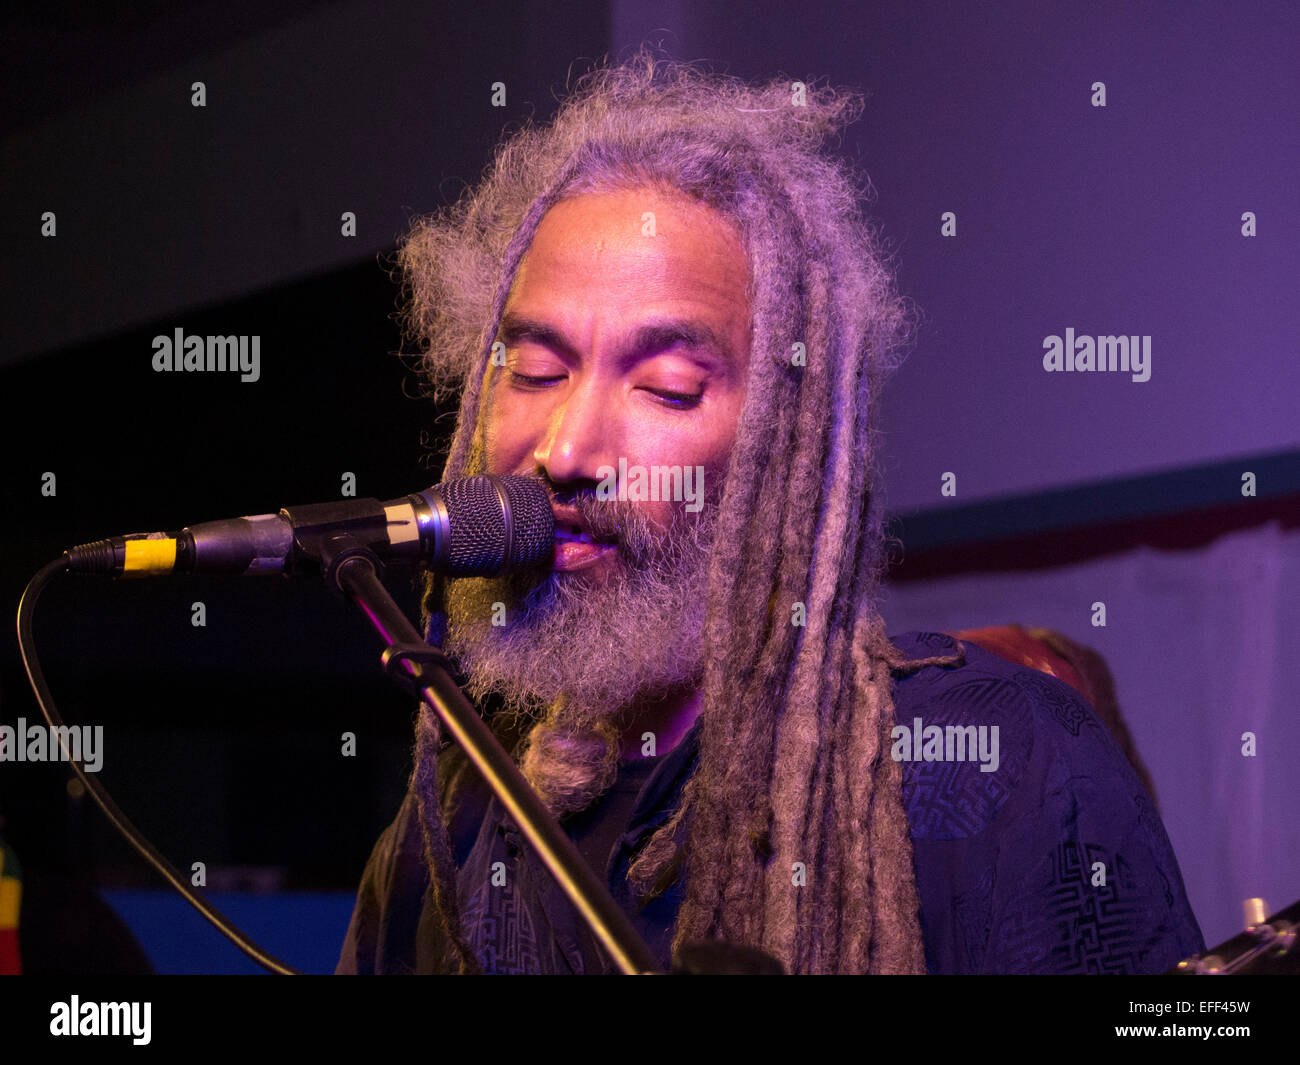 African American reggae musician sings in his family band ReBelle, Northampton, MA, New Years Eve 2015 - Stock Image